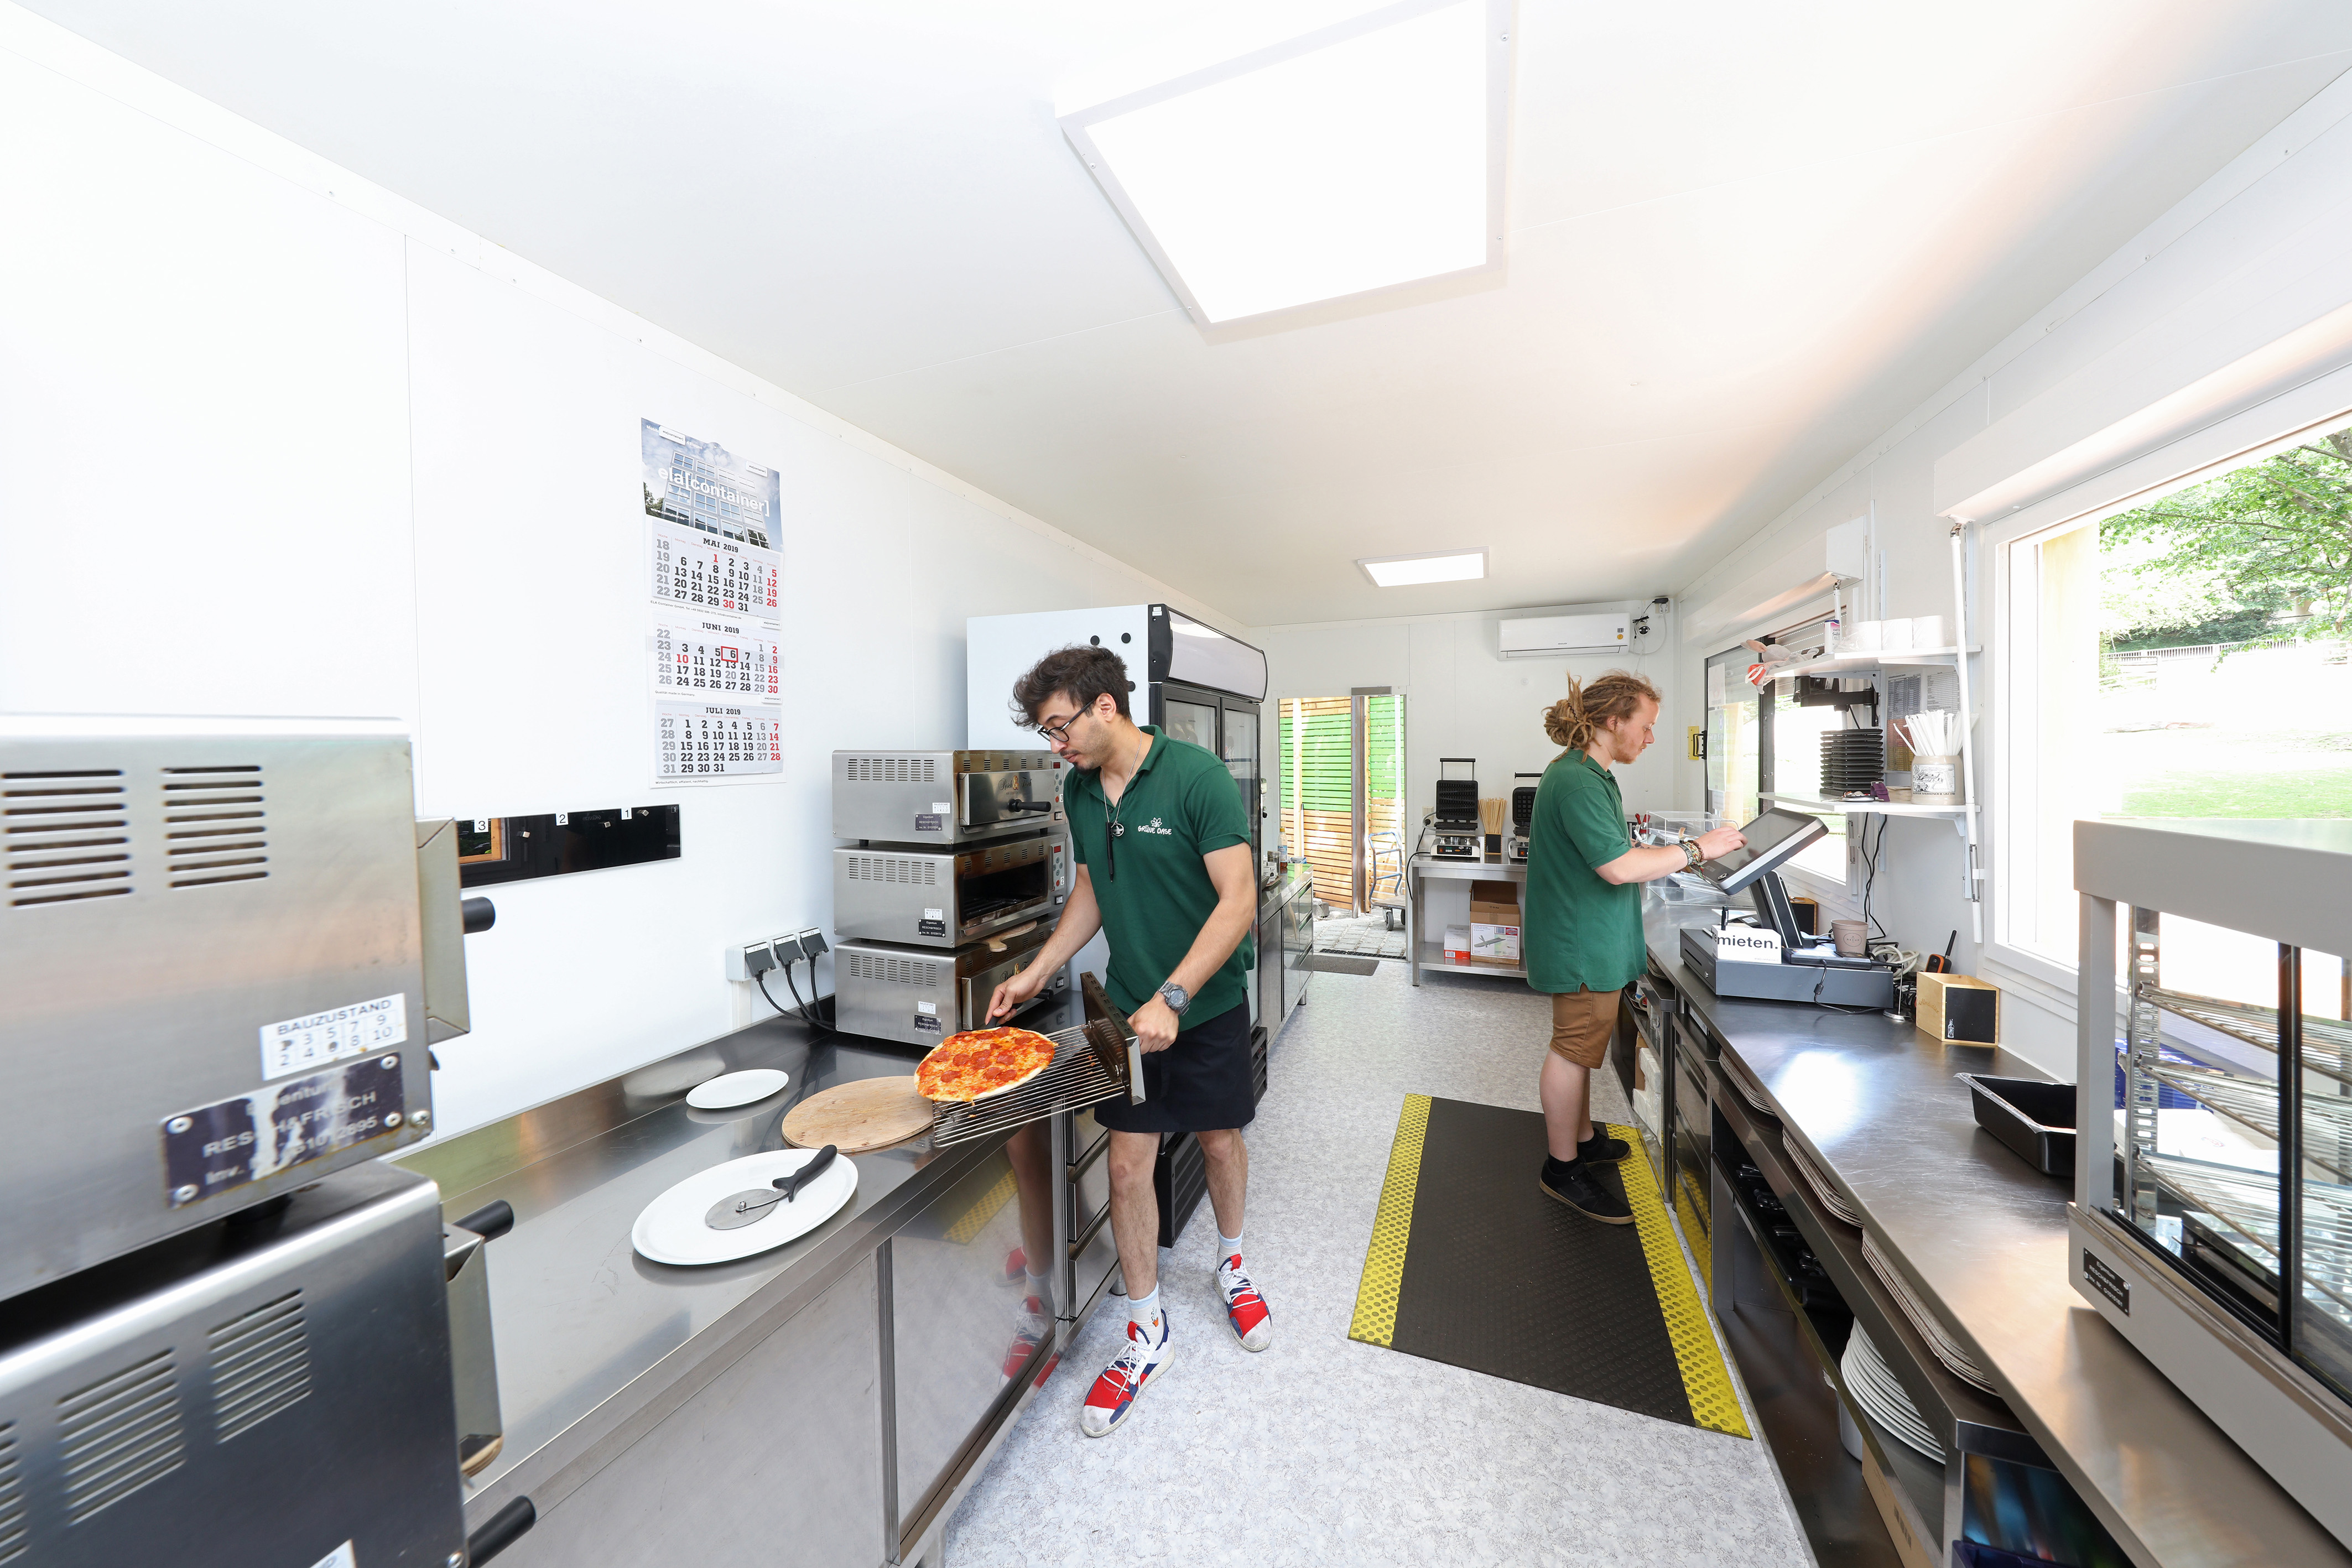 The space within the container system is optimally used for the kitchen.